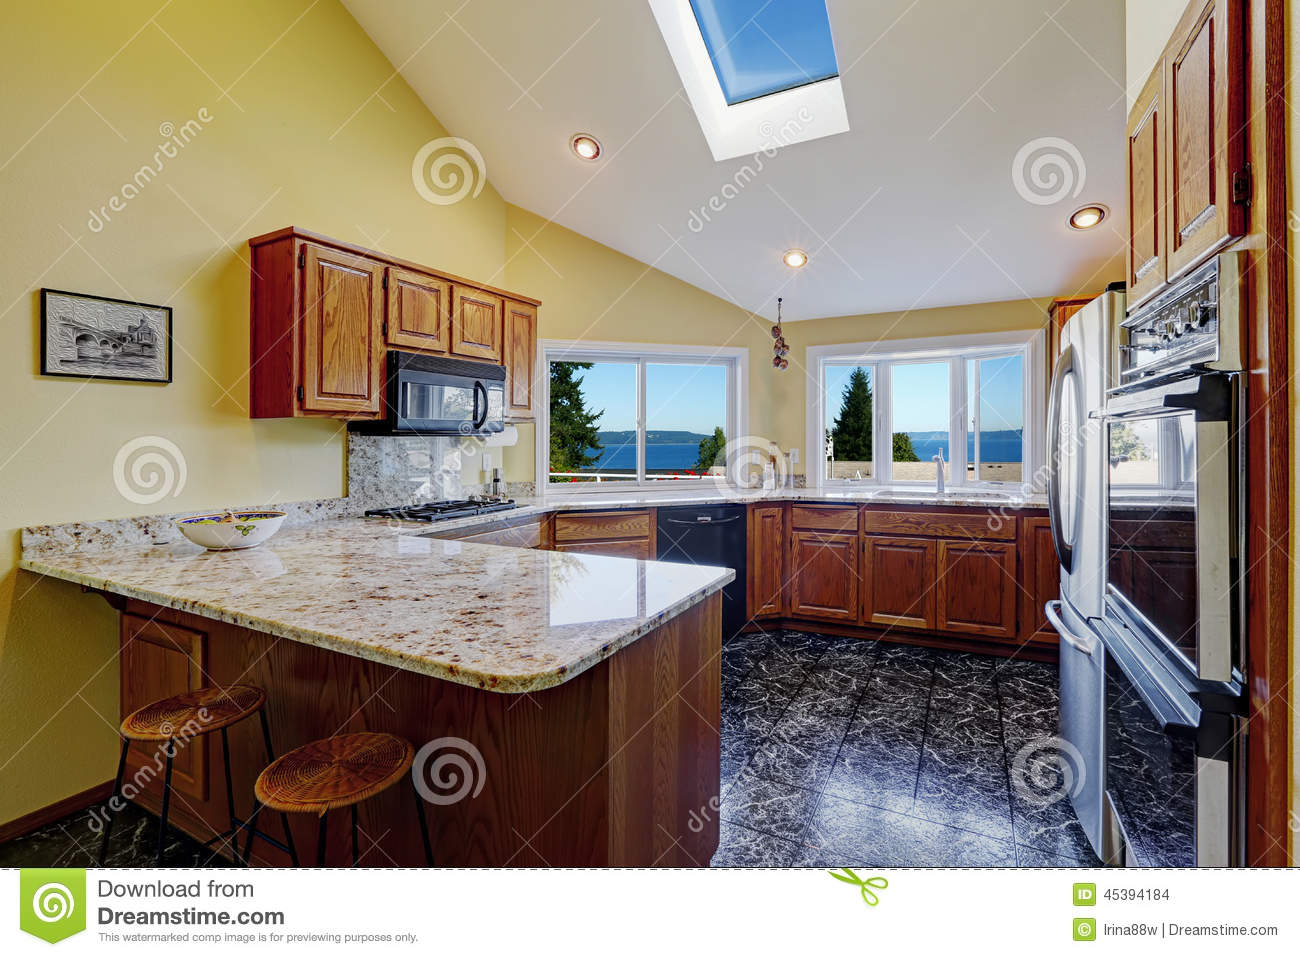 Beautiful kitchen room with skylight granite tile floor stock photo image 45394184 - Amazing beautiful kitchen rooms ...